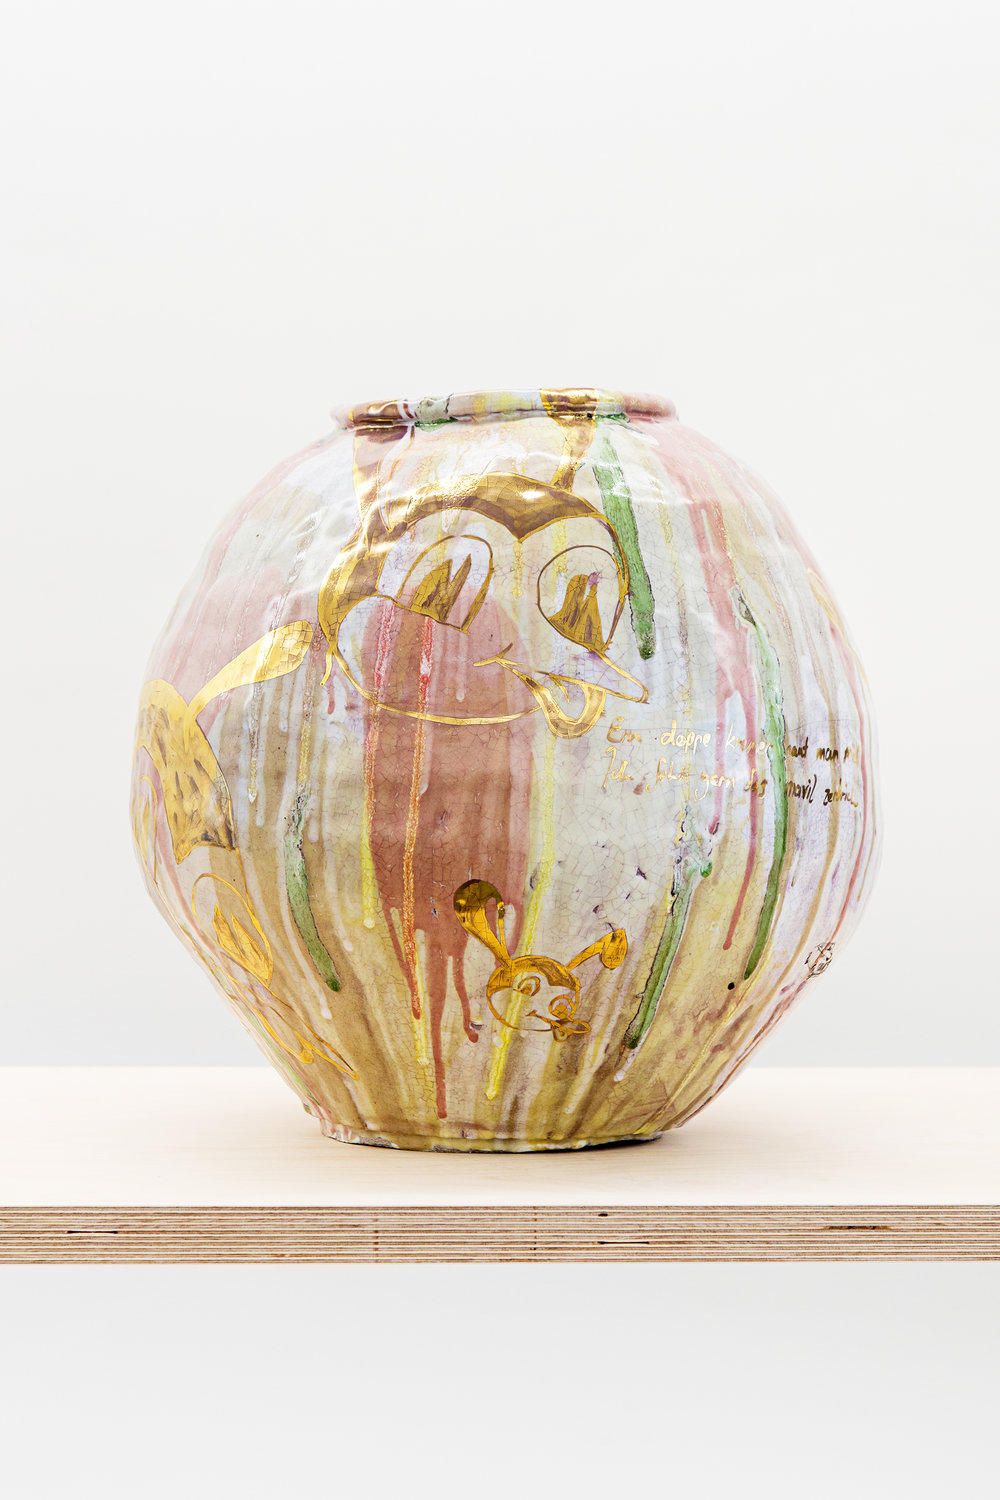 ANDREI DAVIDOFF They call me a pottery seller, I like to see lots of pots being broken . 2017 ceramic, stoneware, glazes, earthenware glazes, glass, decals, gold lustre 40 x 40 x 40 cm